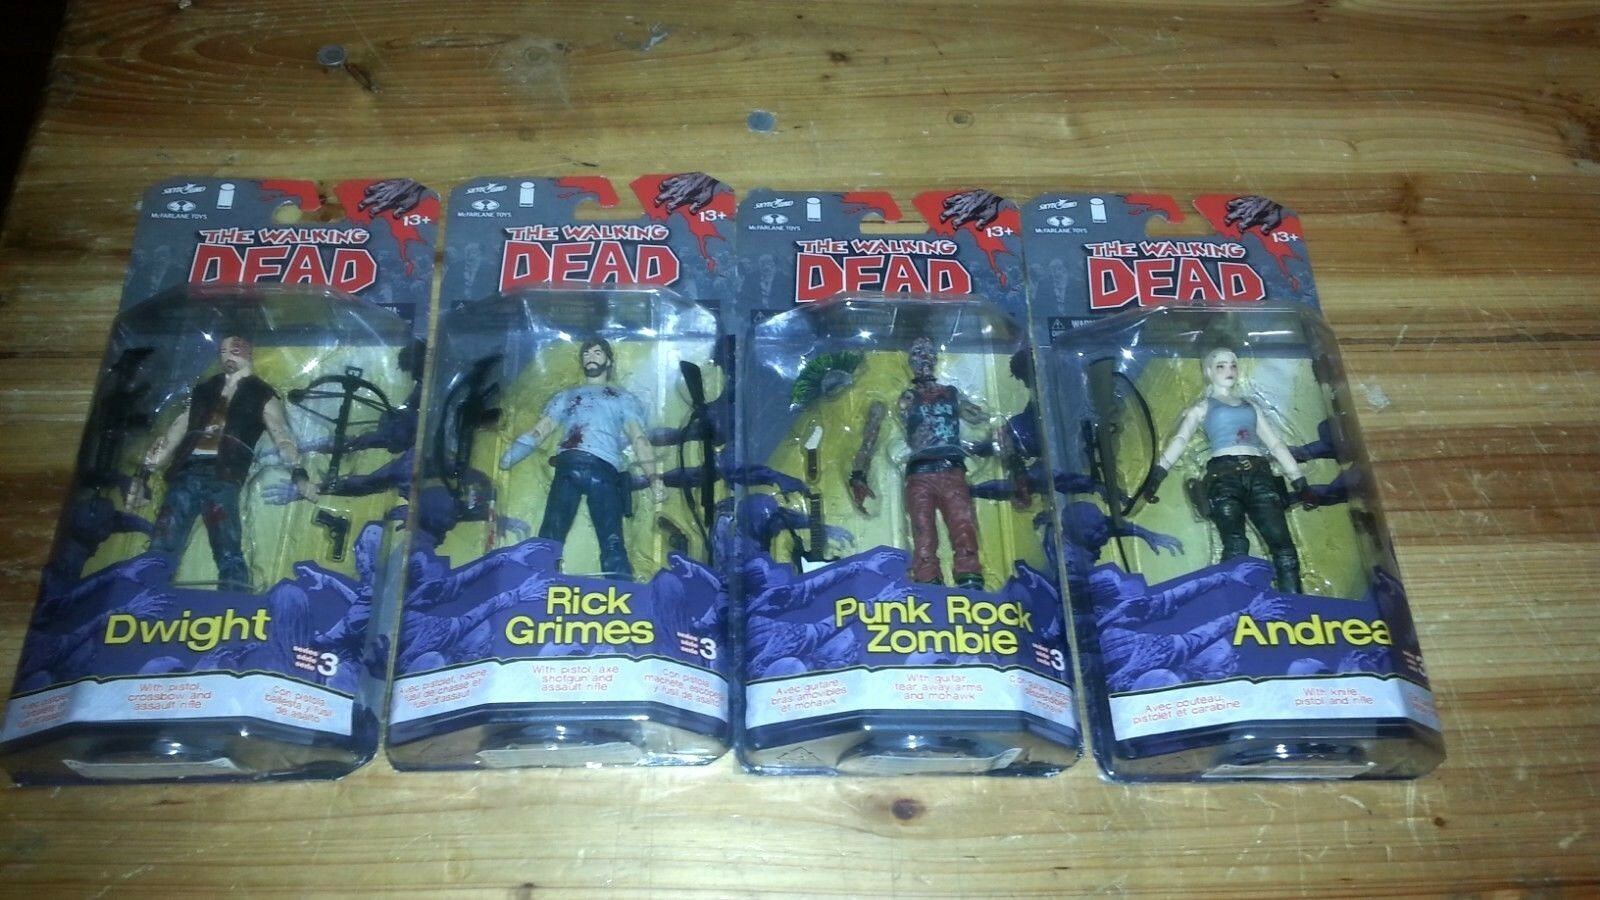 Die Walking Dead Serie 3 Set Rick Grimes-Andrea-DWIGHT-Punk Rock-McFarlane-af1